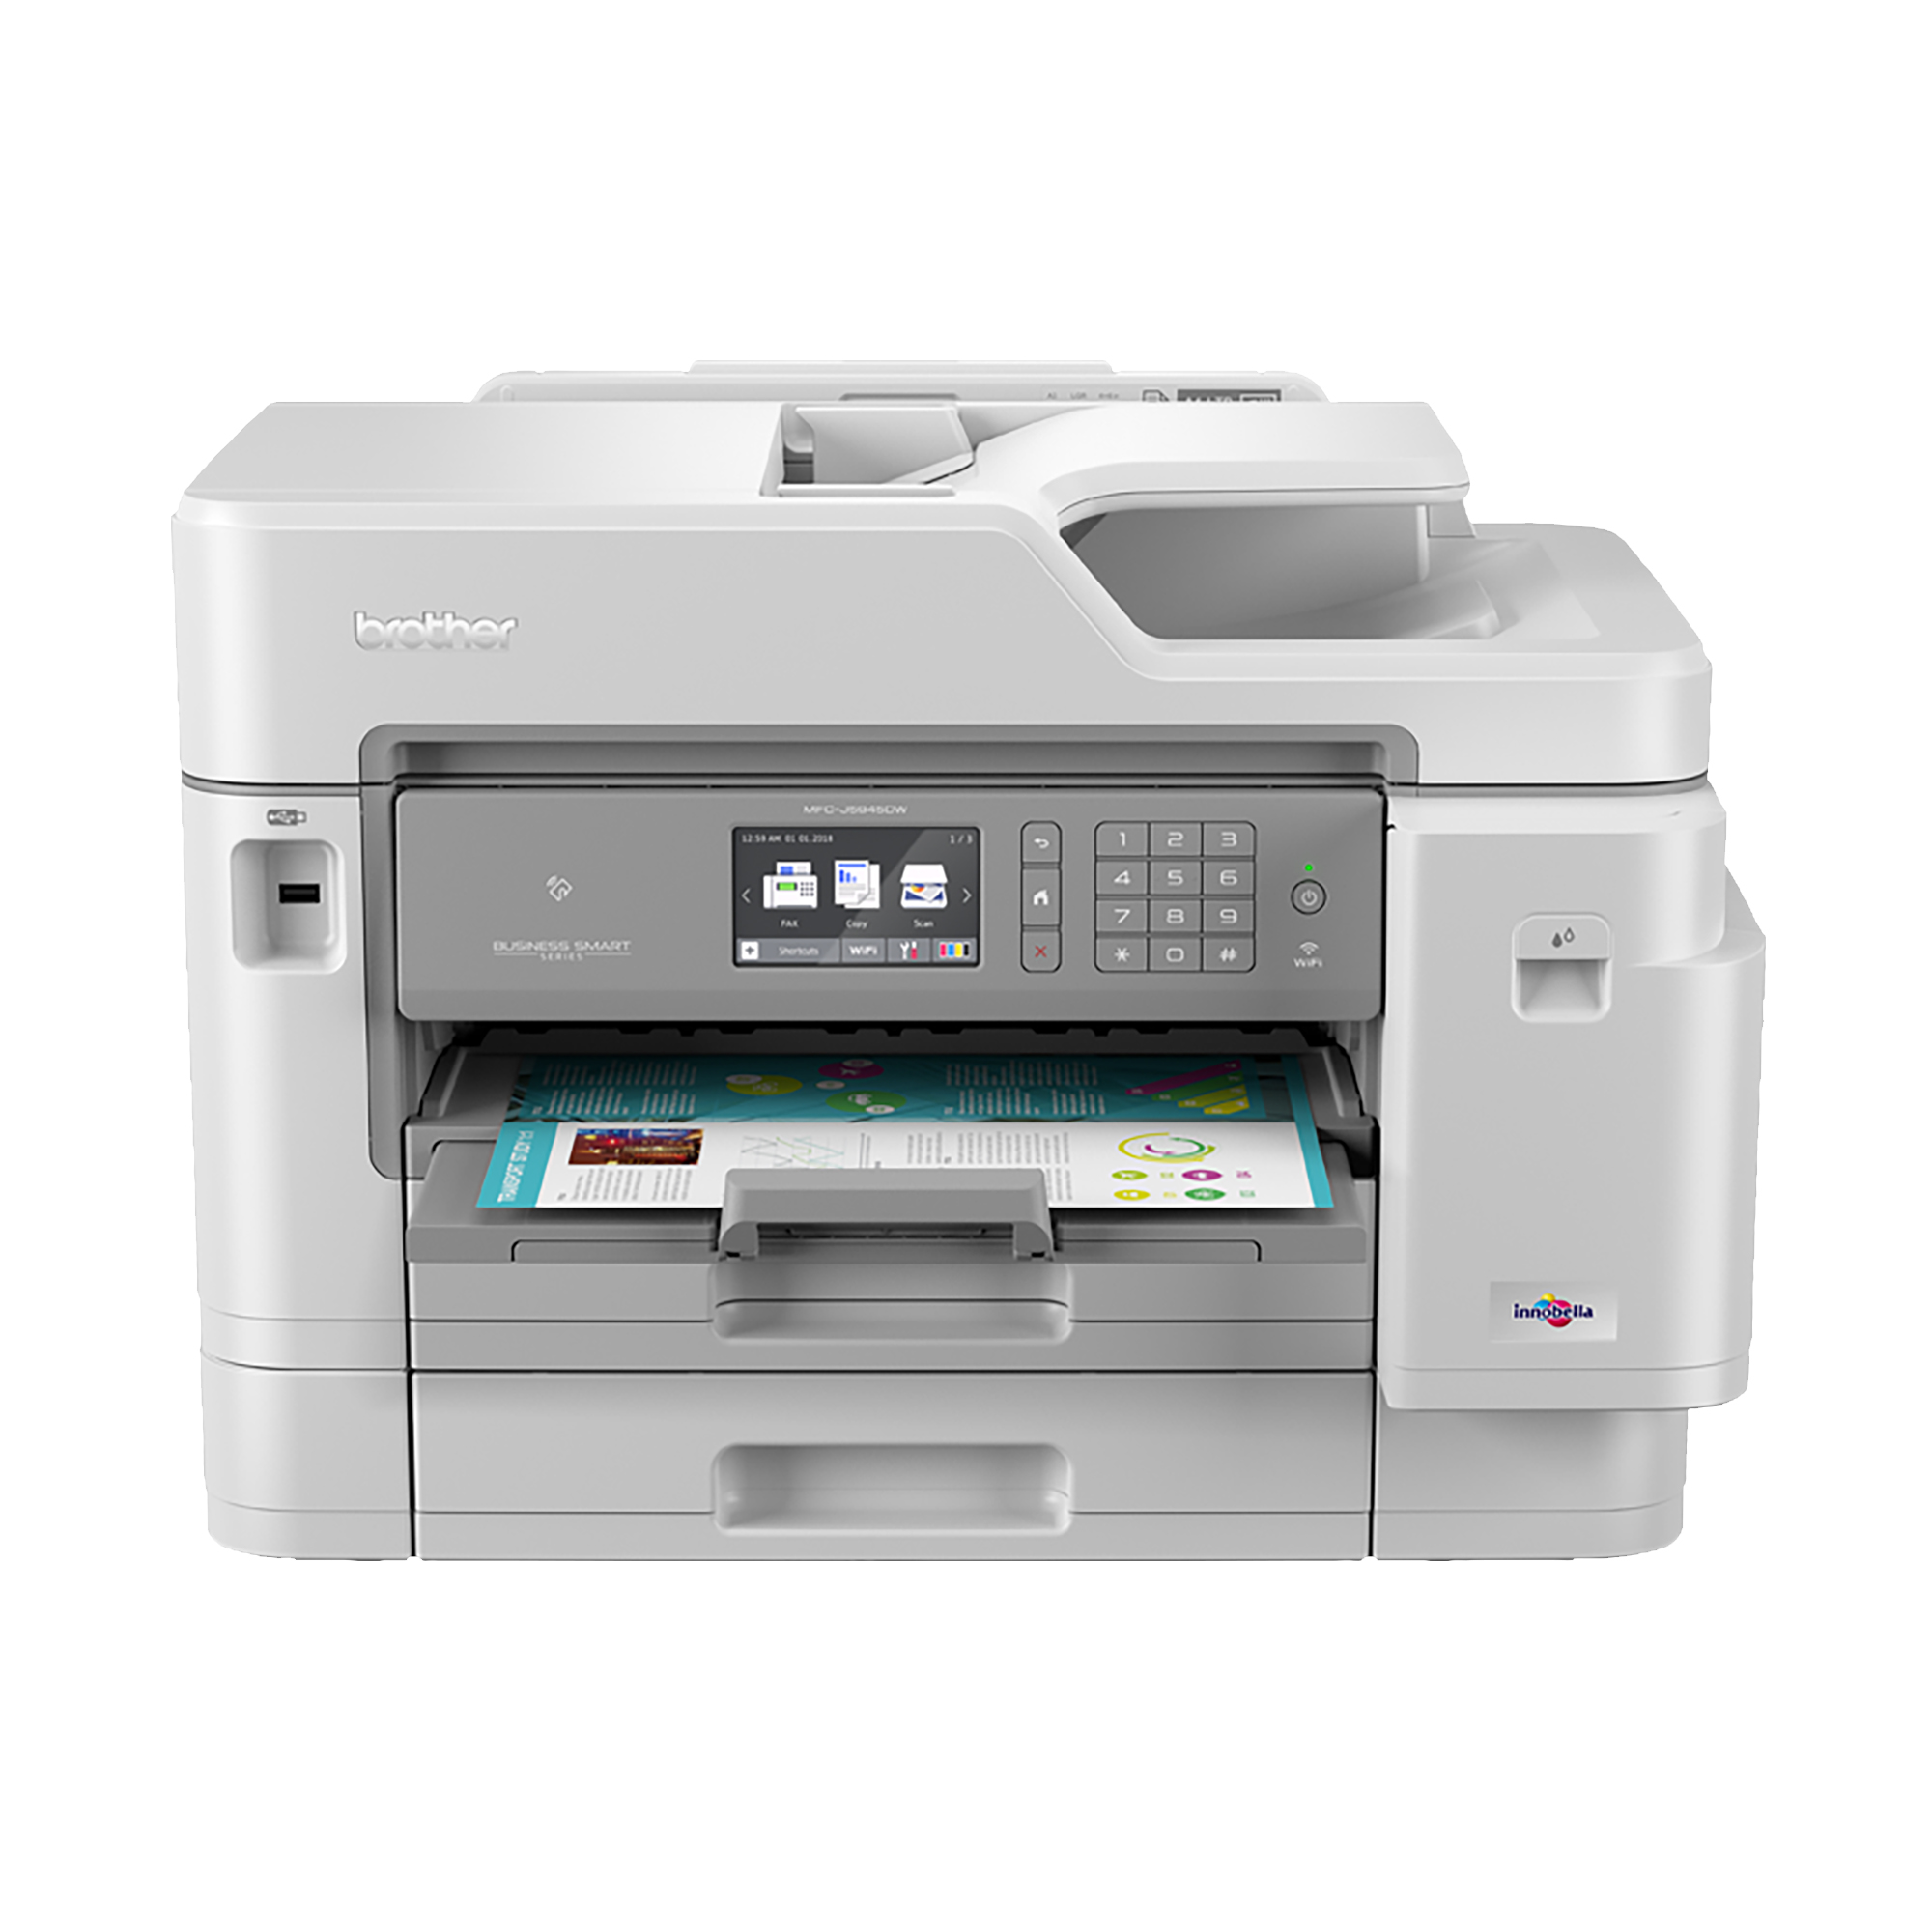 Brother MFC-J5945DW Inkjet Printer Multifunctional 4 in 1 Ref MFC-J5945DW